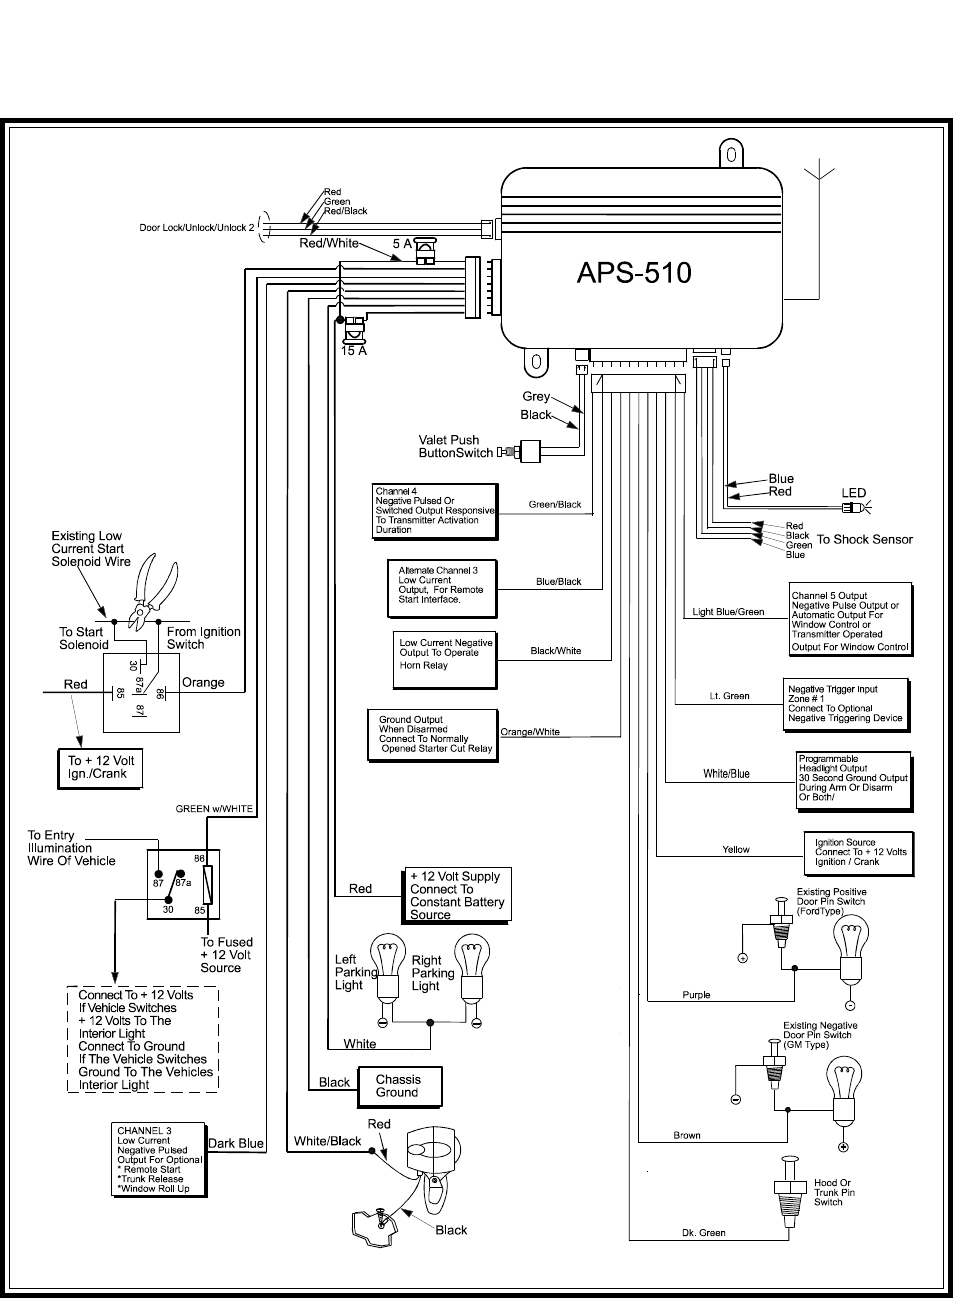 Audiovox Wiring Diagram | Wiring Diagram - Car Alarm Wiring Diagram